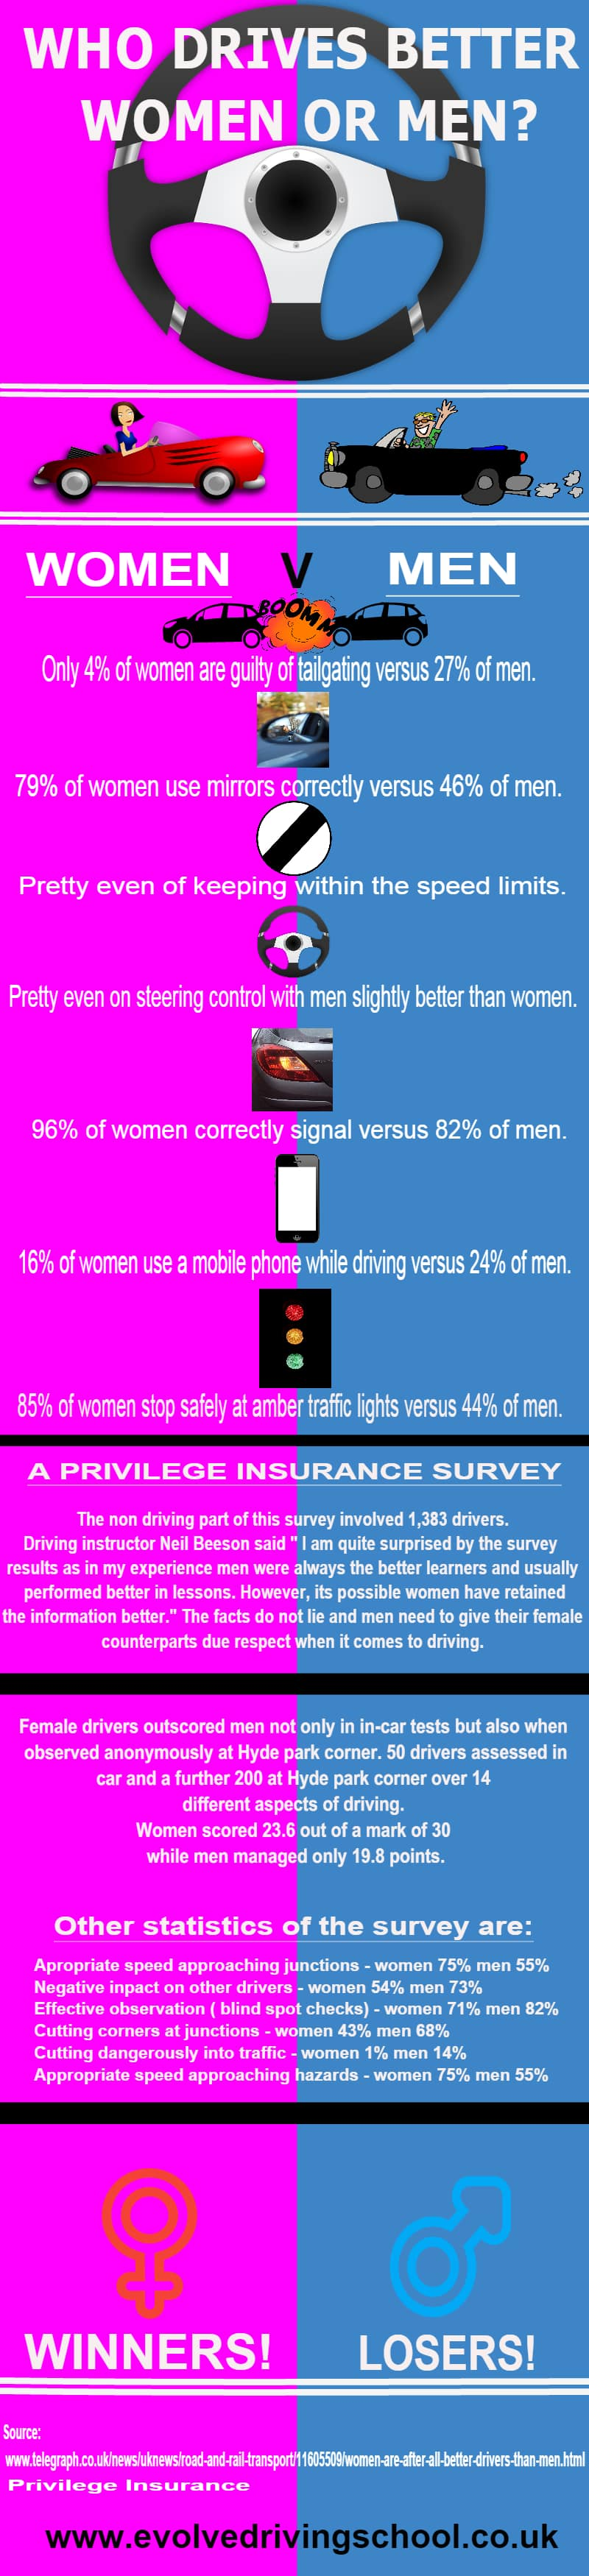 who drives better women or men infographic